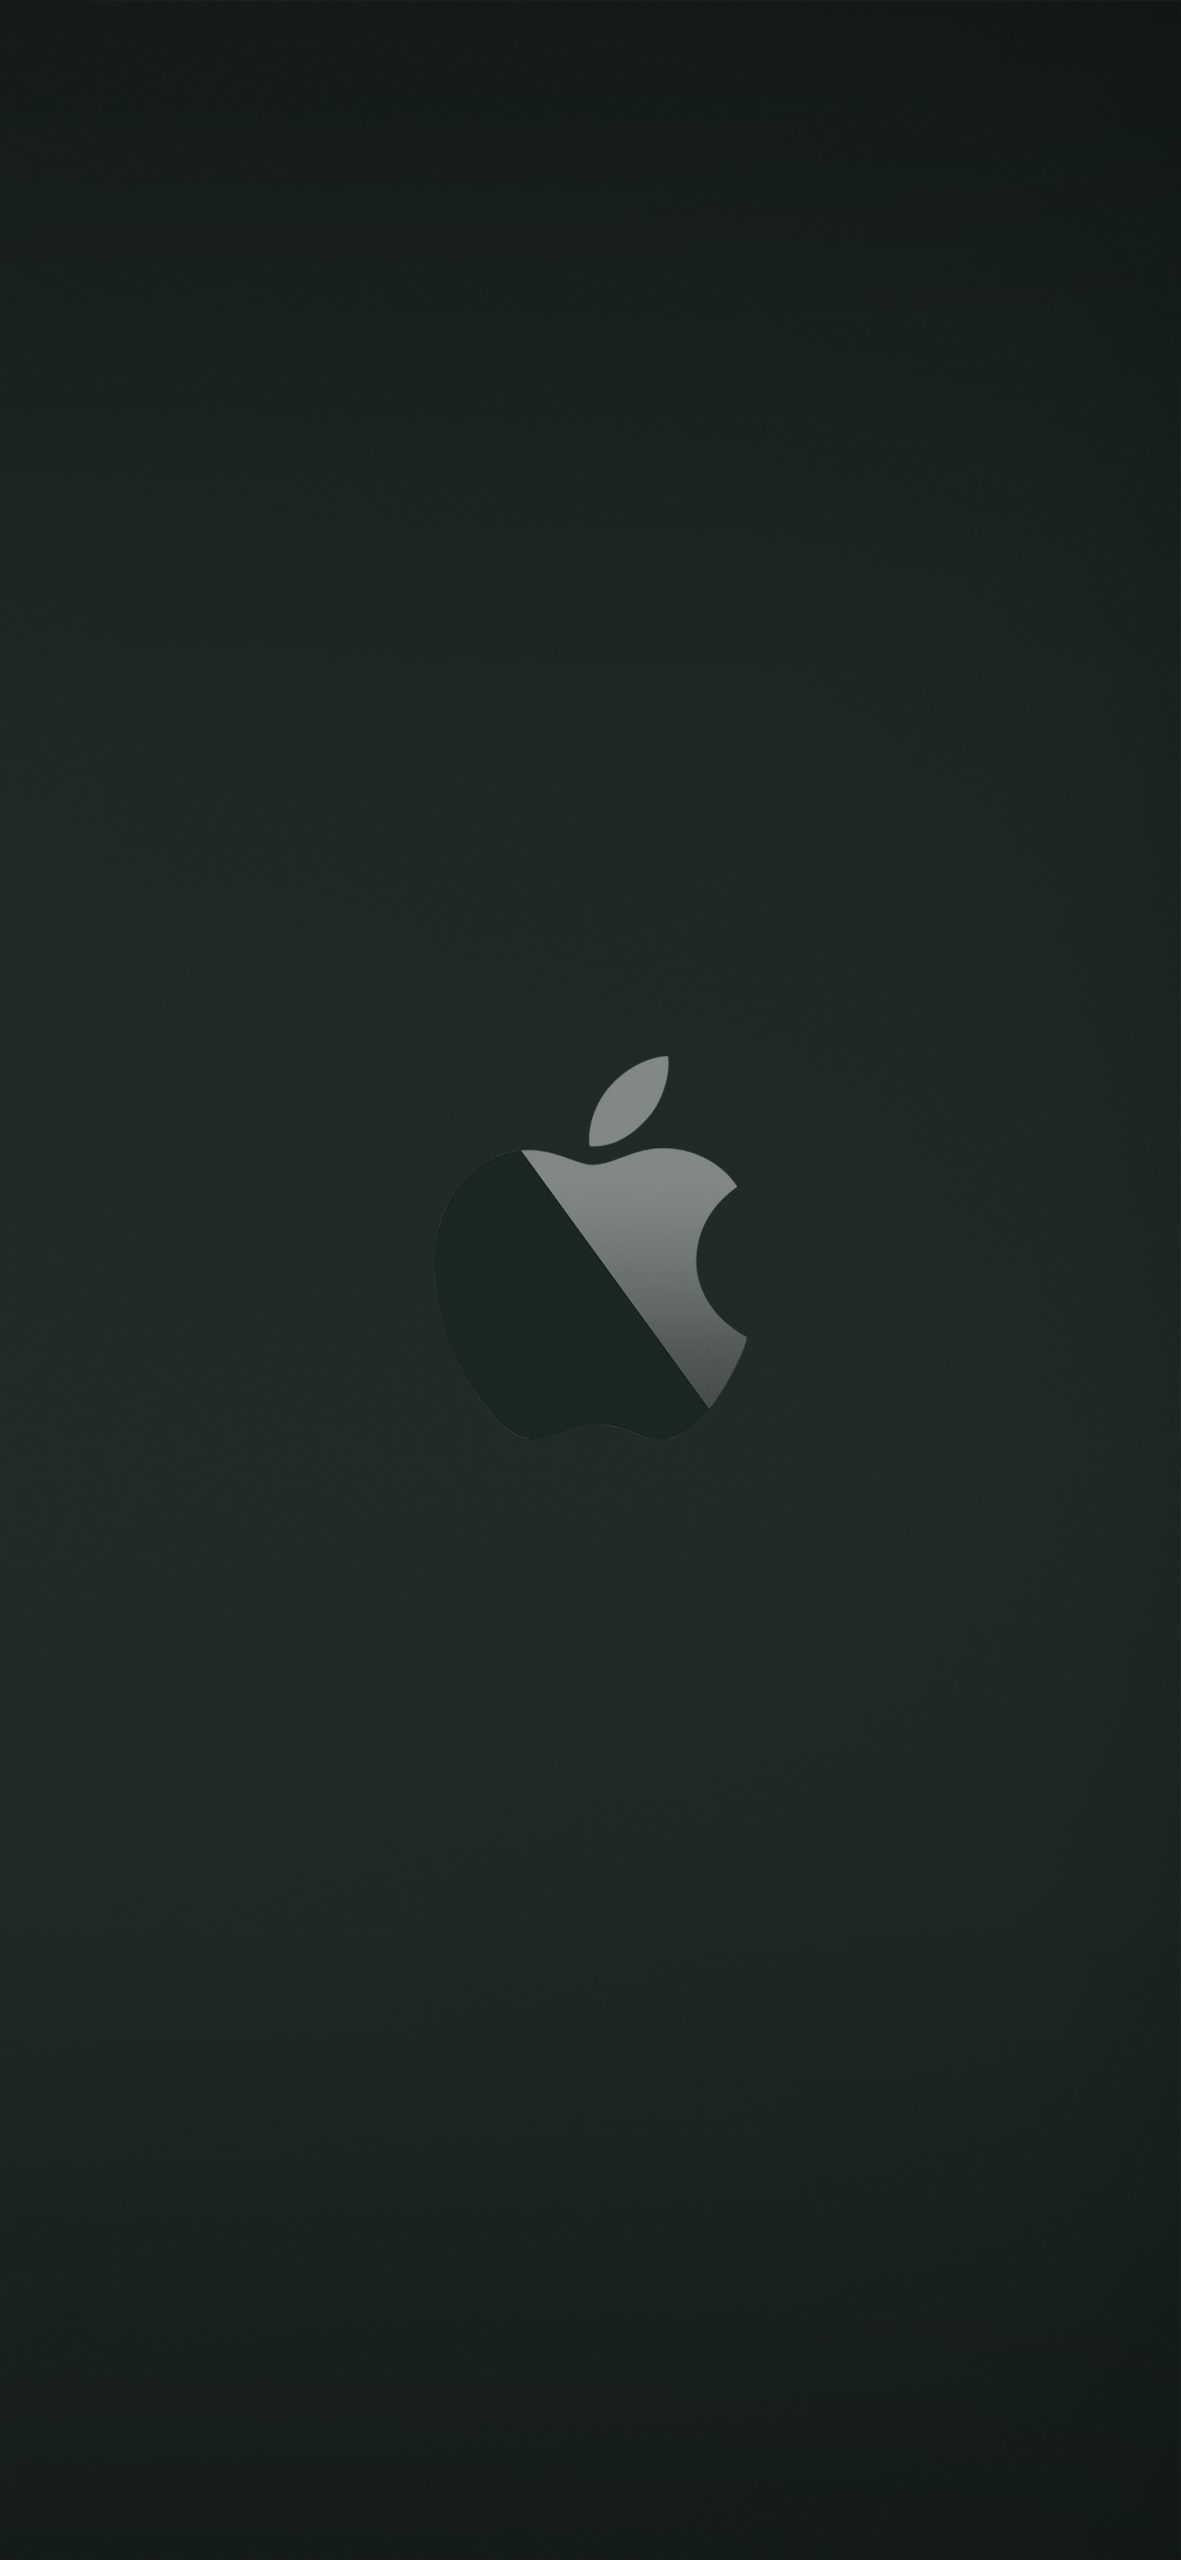 Wwdc 2020 Modded Wallpaper Midnight Green Apple Wallpapers Central